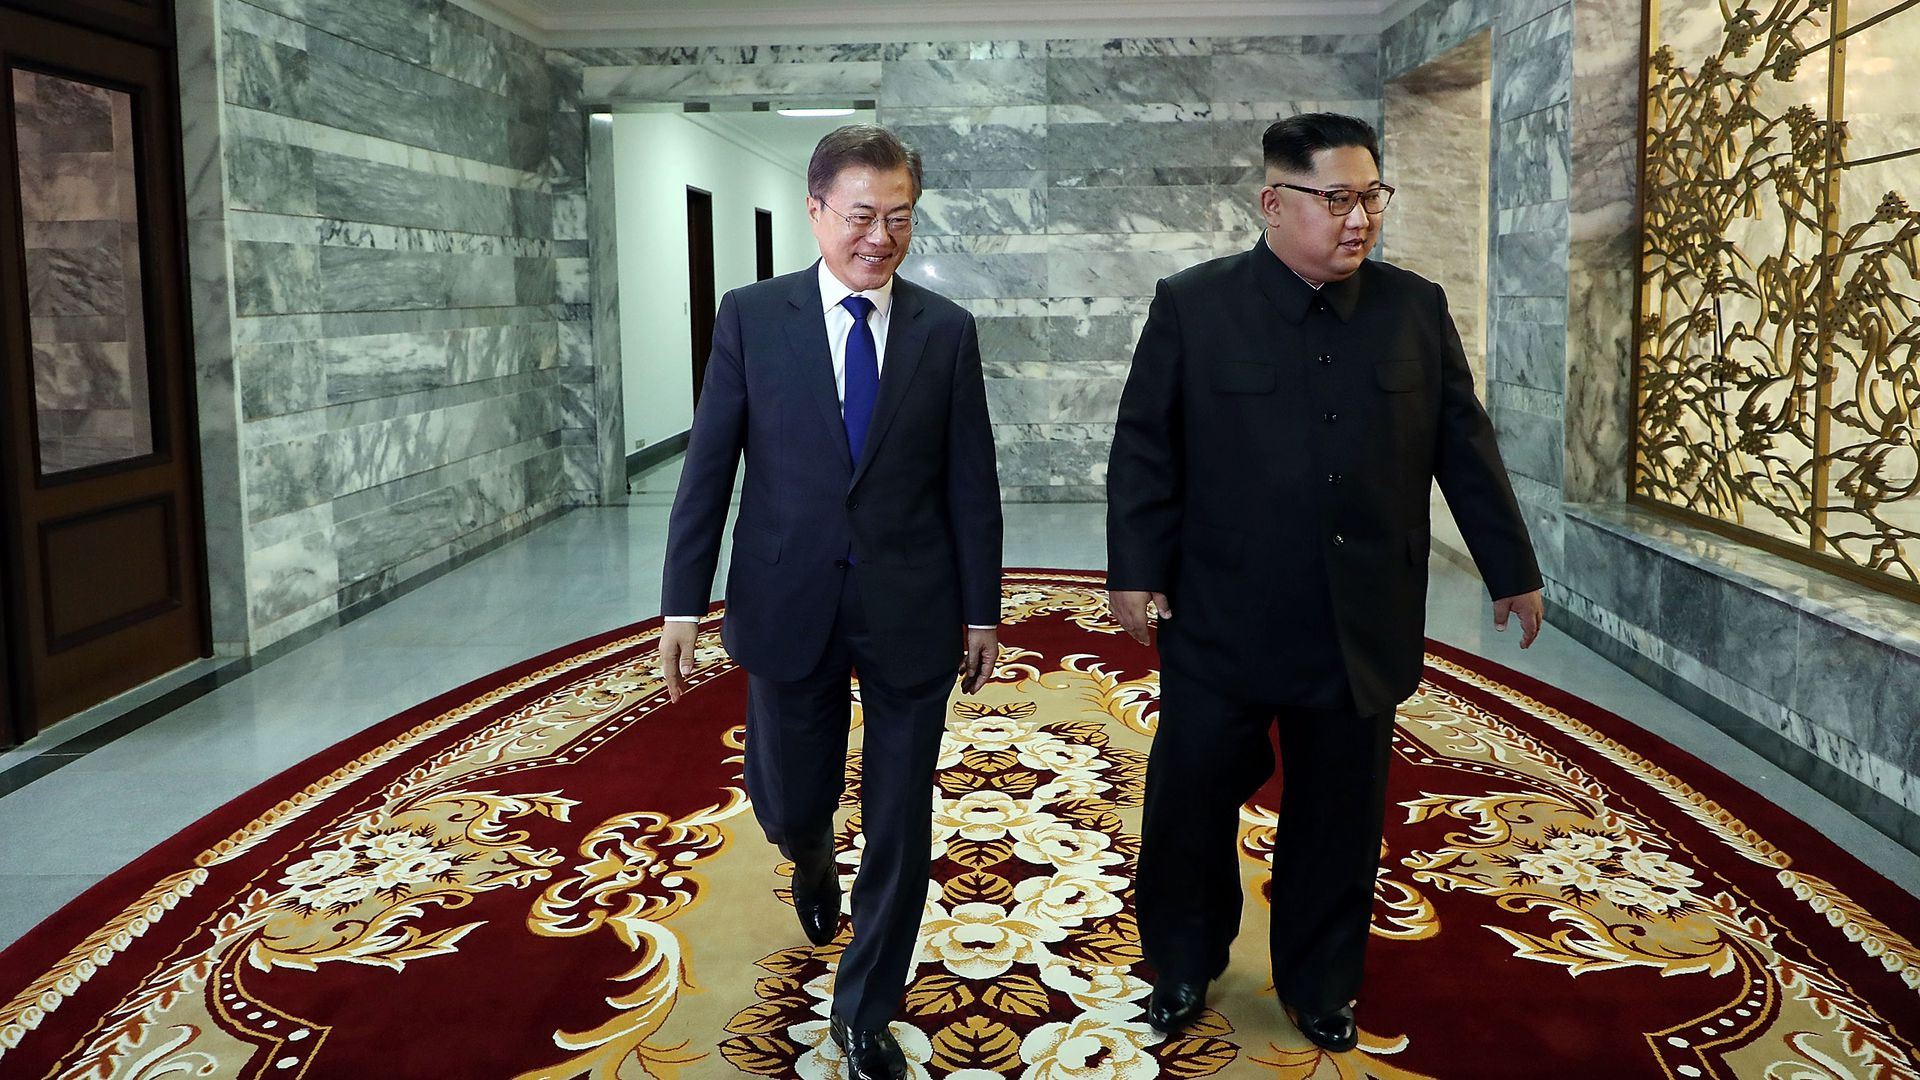 South Korean President Moon Jae-in walks with North Korean leader Kim Jong-un during their meeting on Saturday.